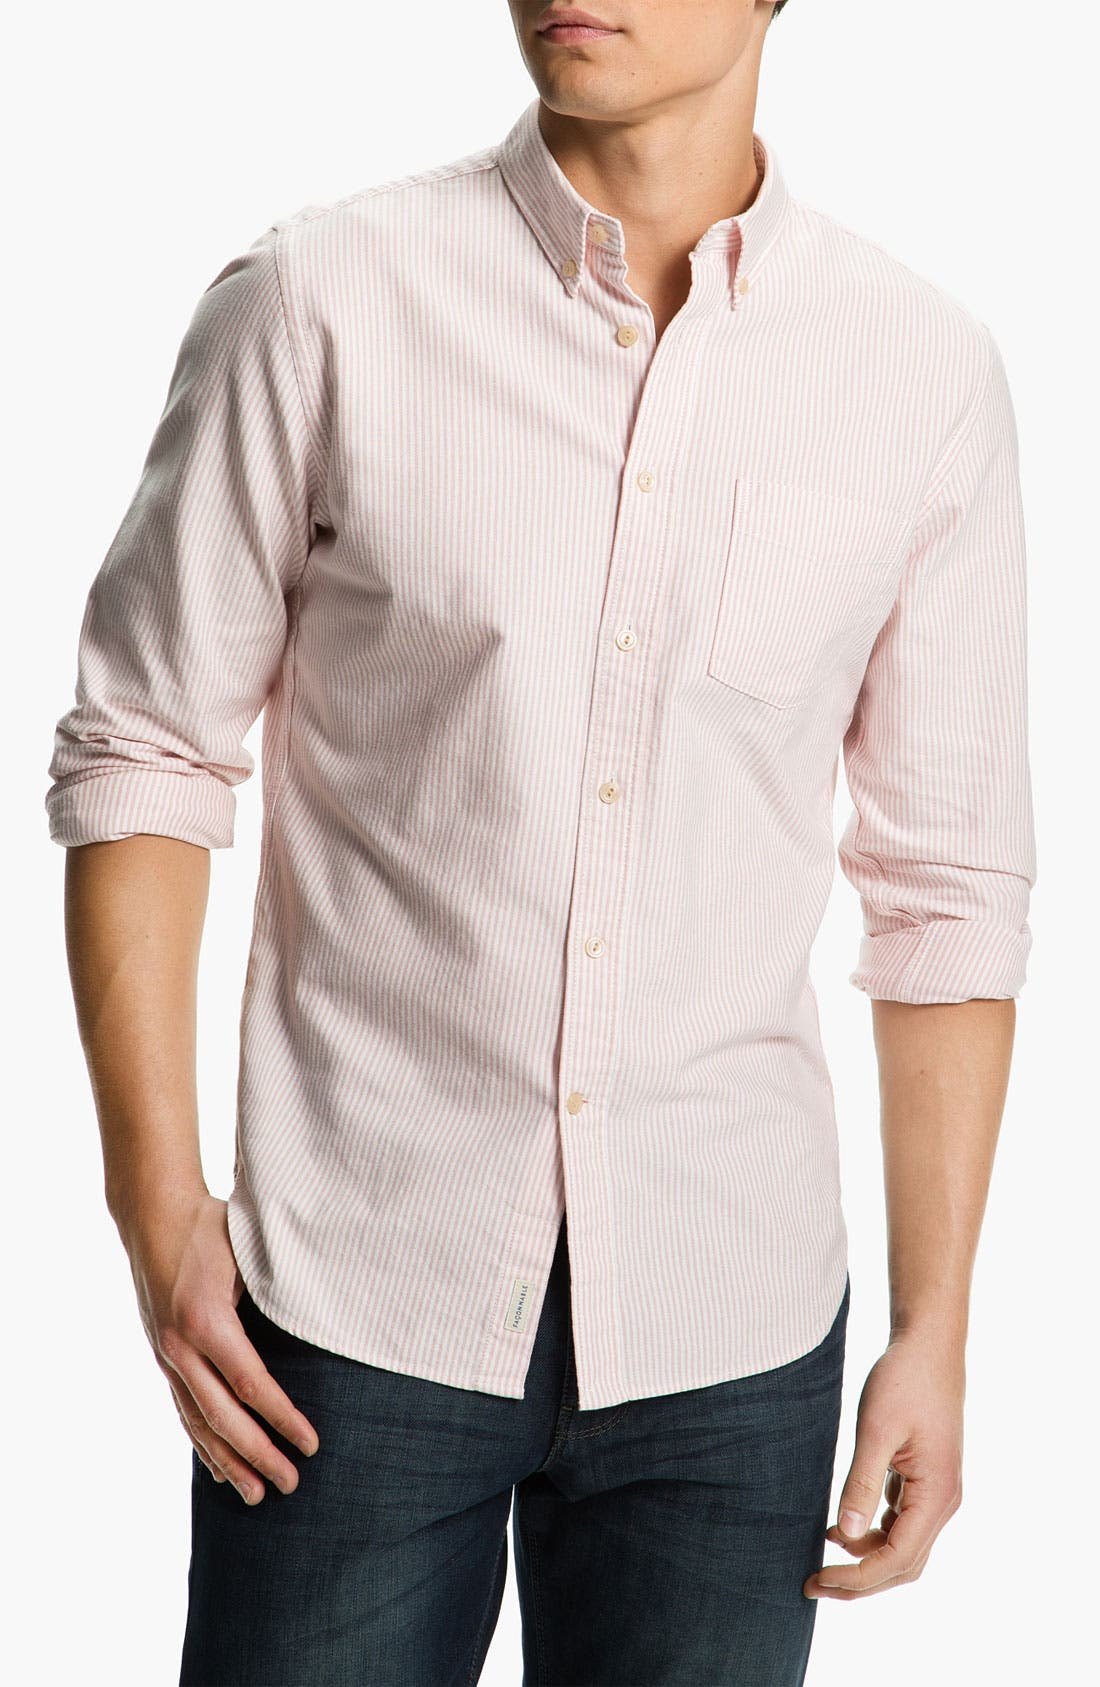 Alternate Image 1 Selected - Façonnable Jeans Sport Shirt